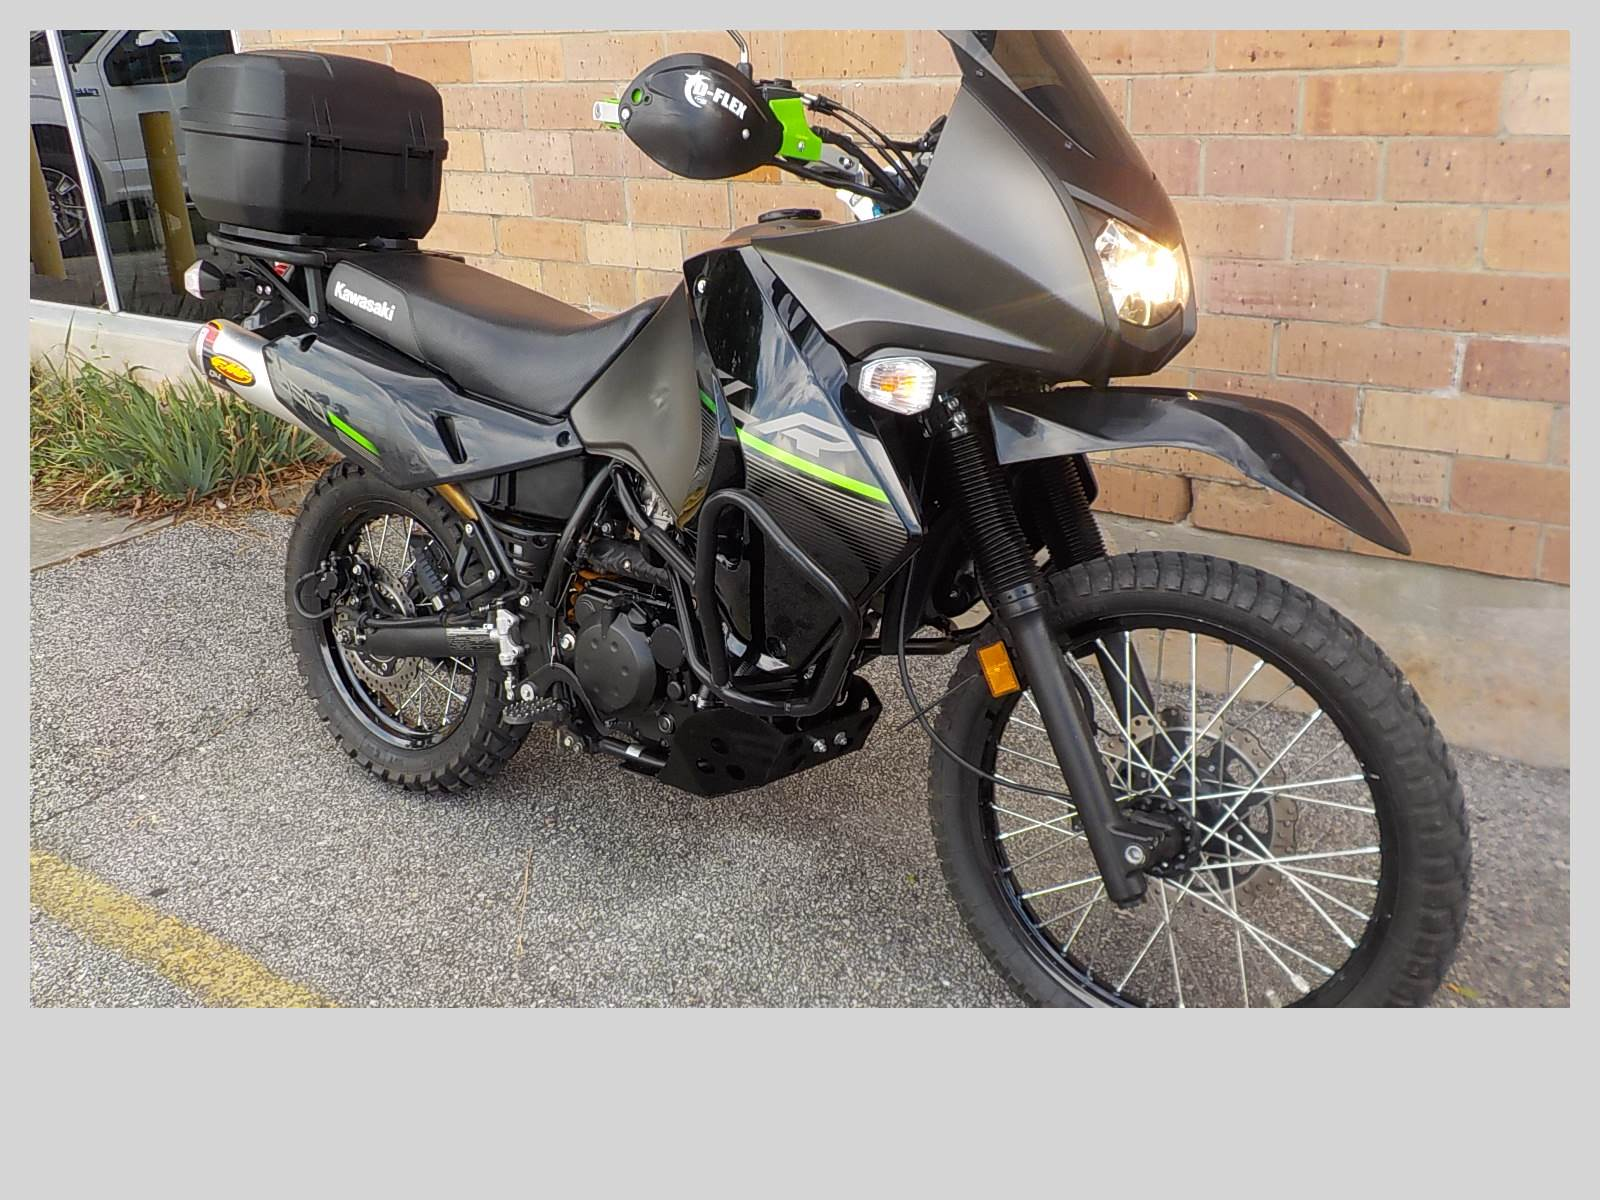 2015 Kawasaki KLR™650 in San Antonio, Texas - Photo 3